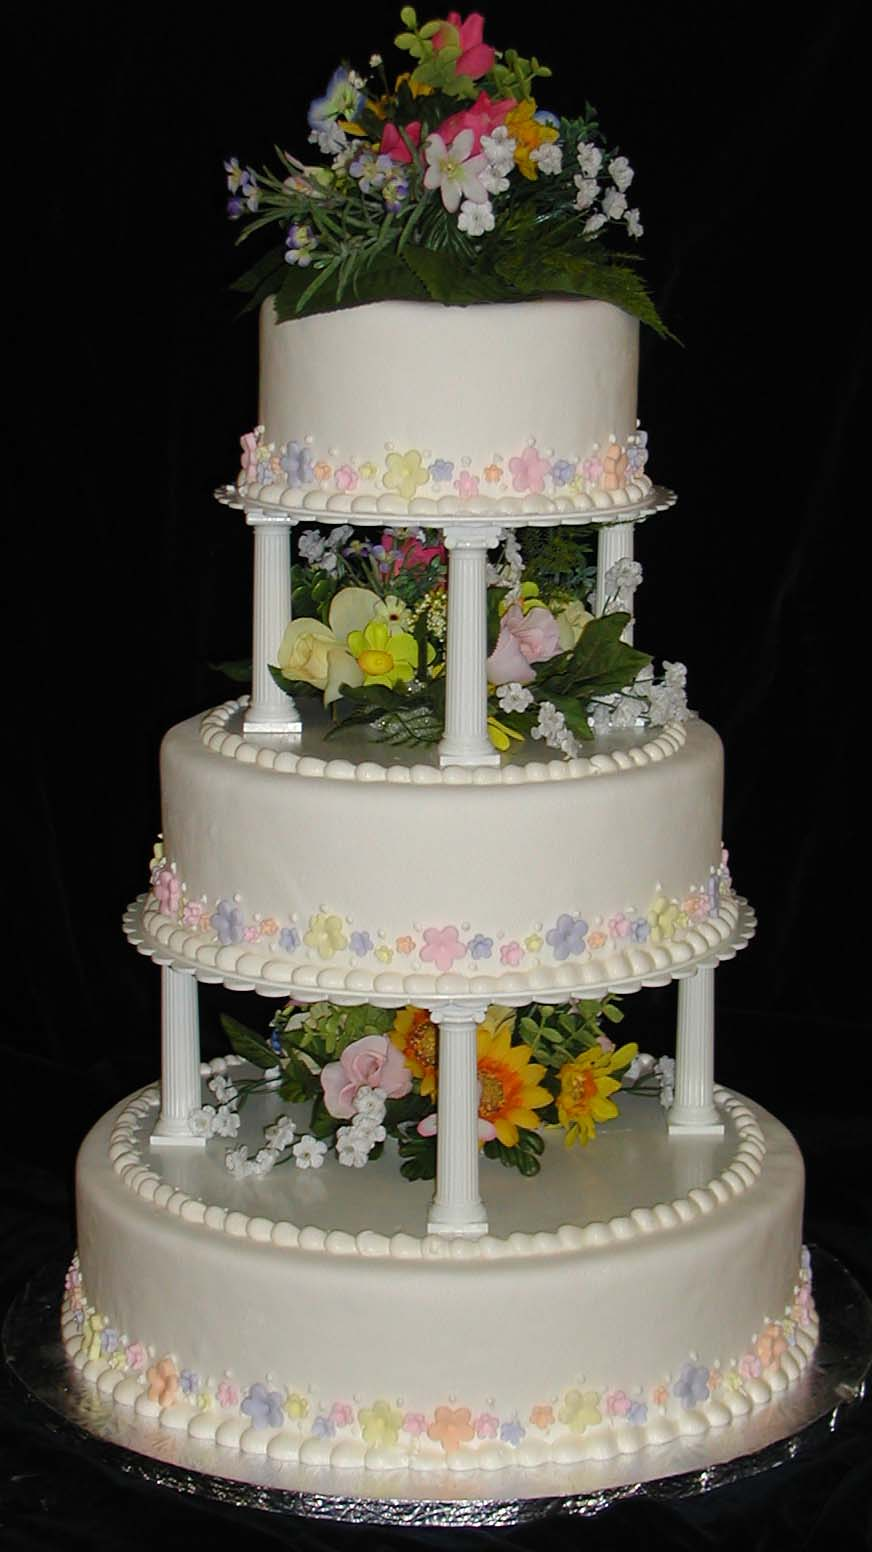 Three Tiered With Pillars And Flowers